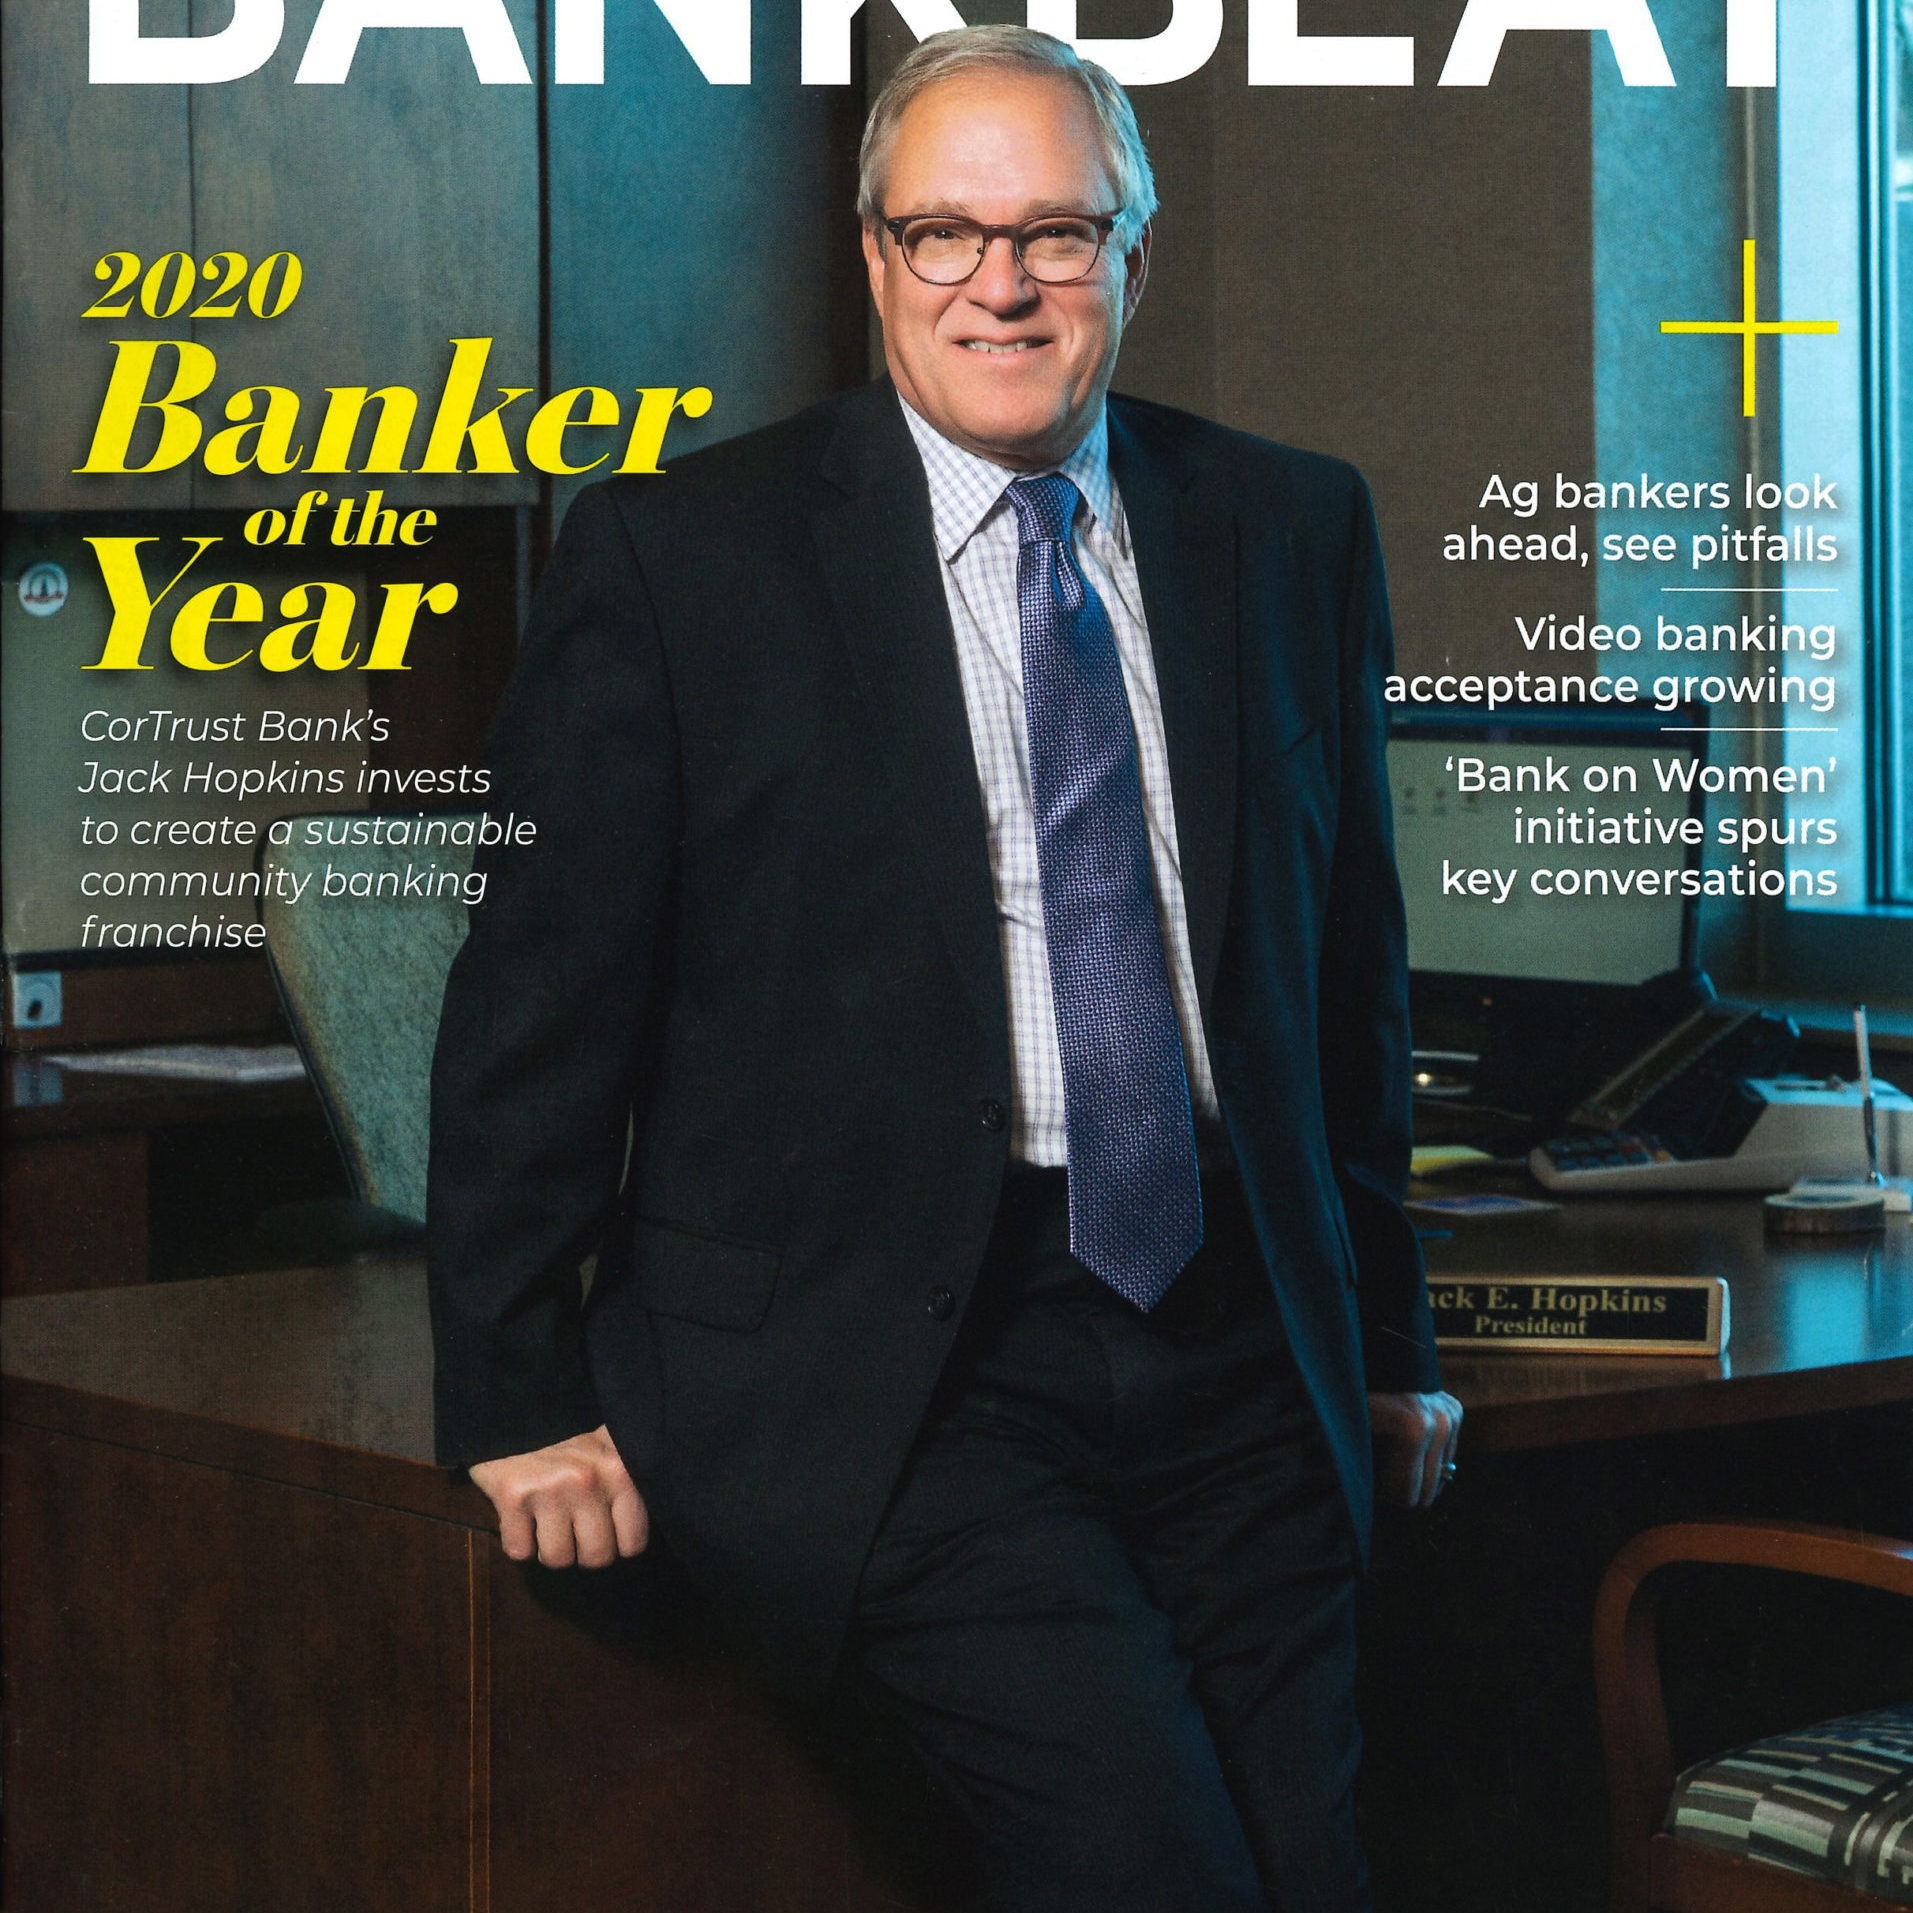 Bank Beat Magazine Cover